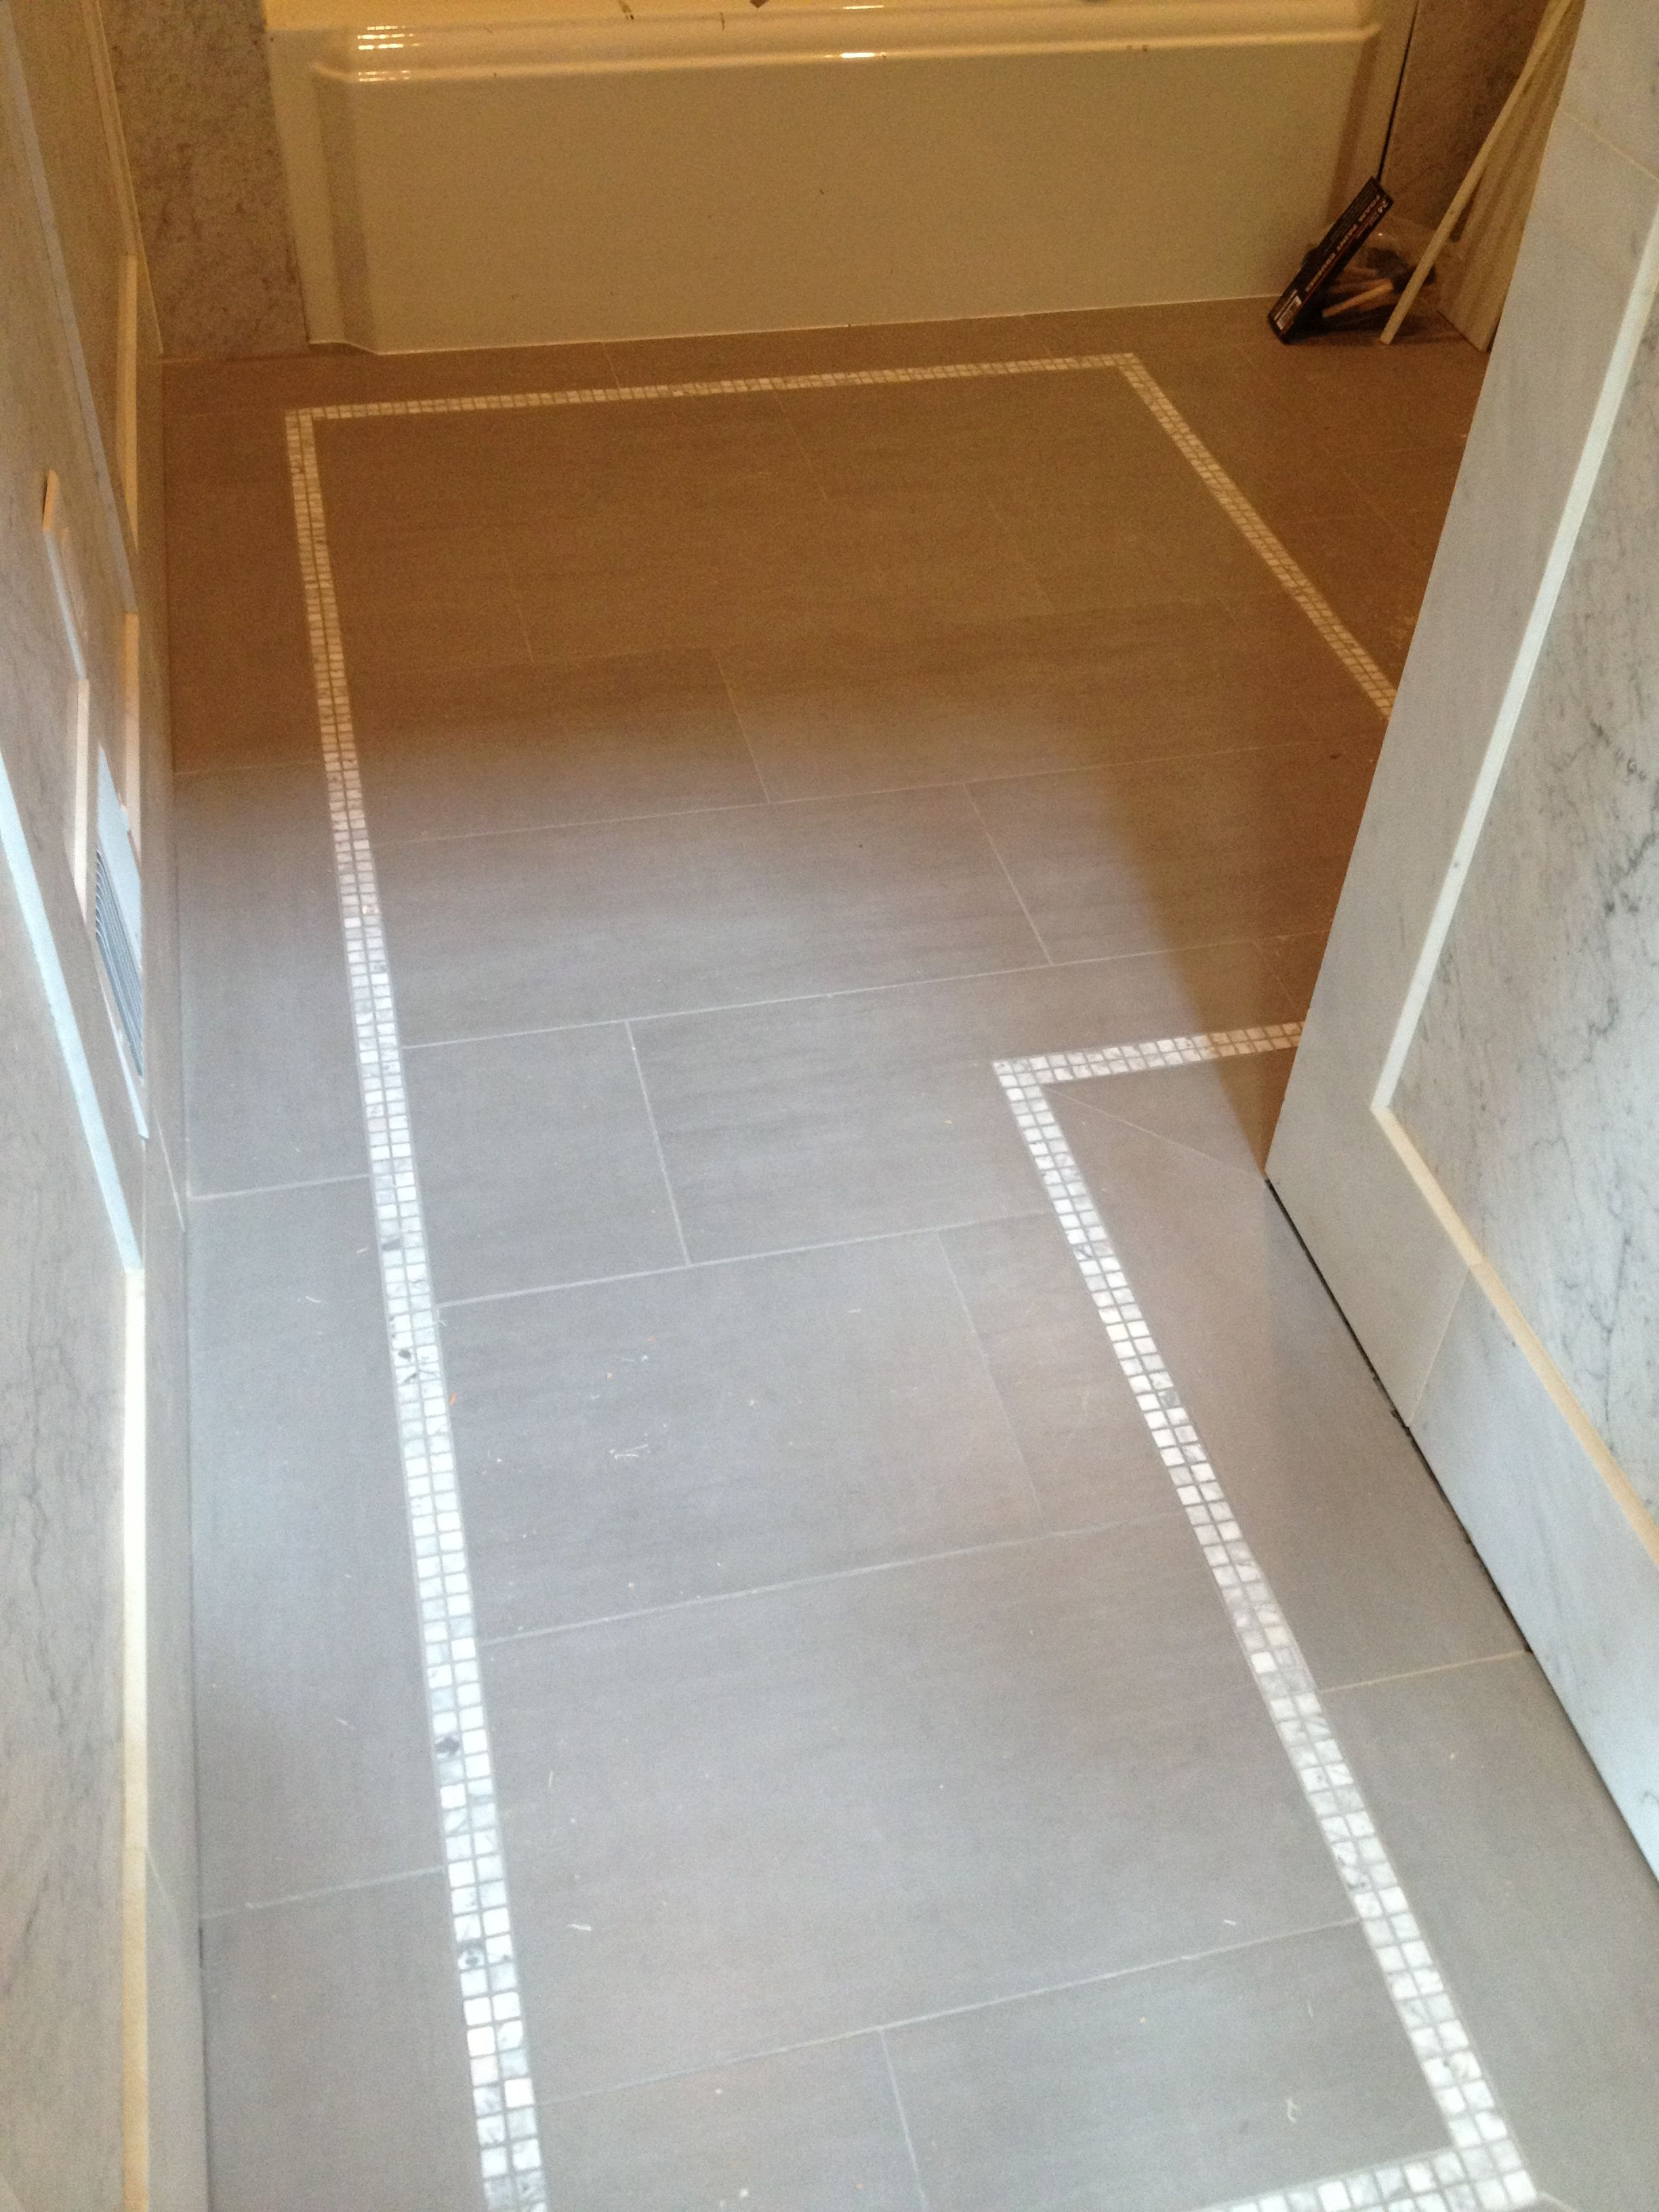 Tiled Floor In Kids Bath 12x24 Tiles With 1x1 Border Tile